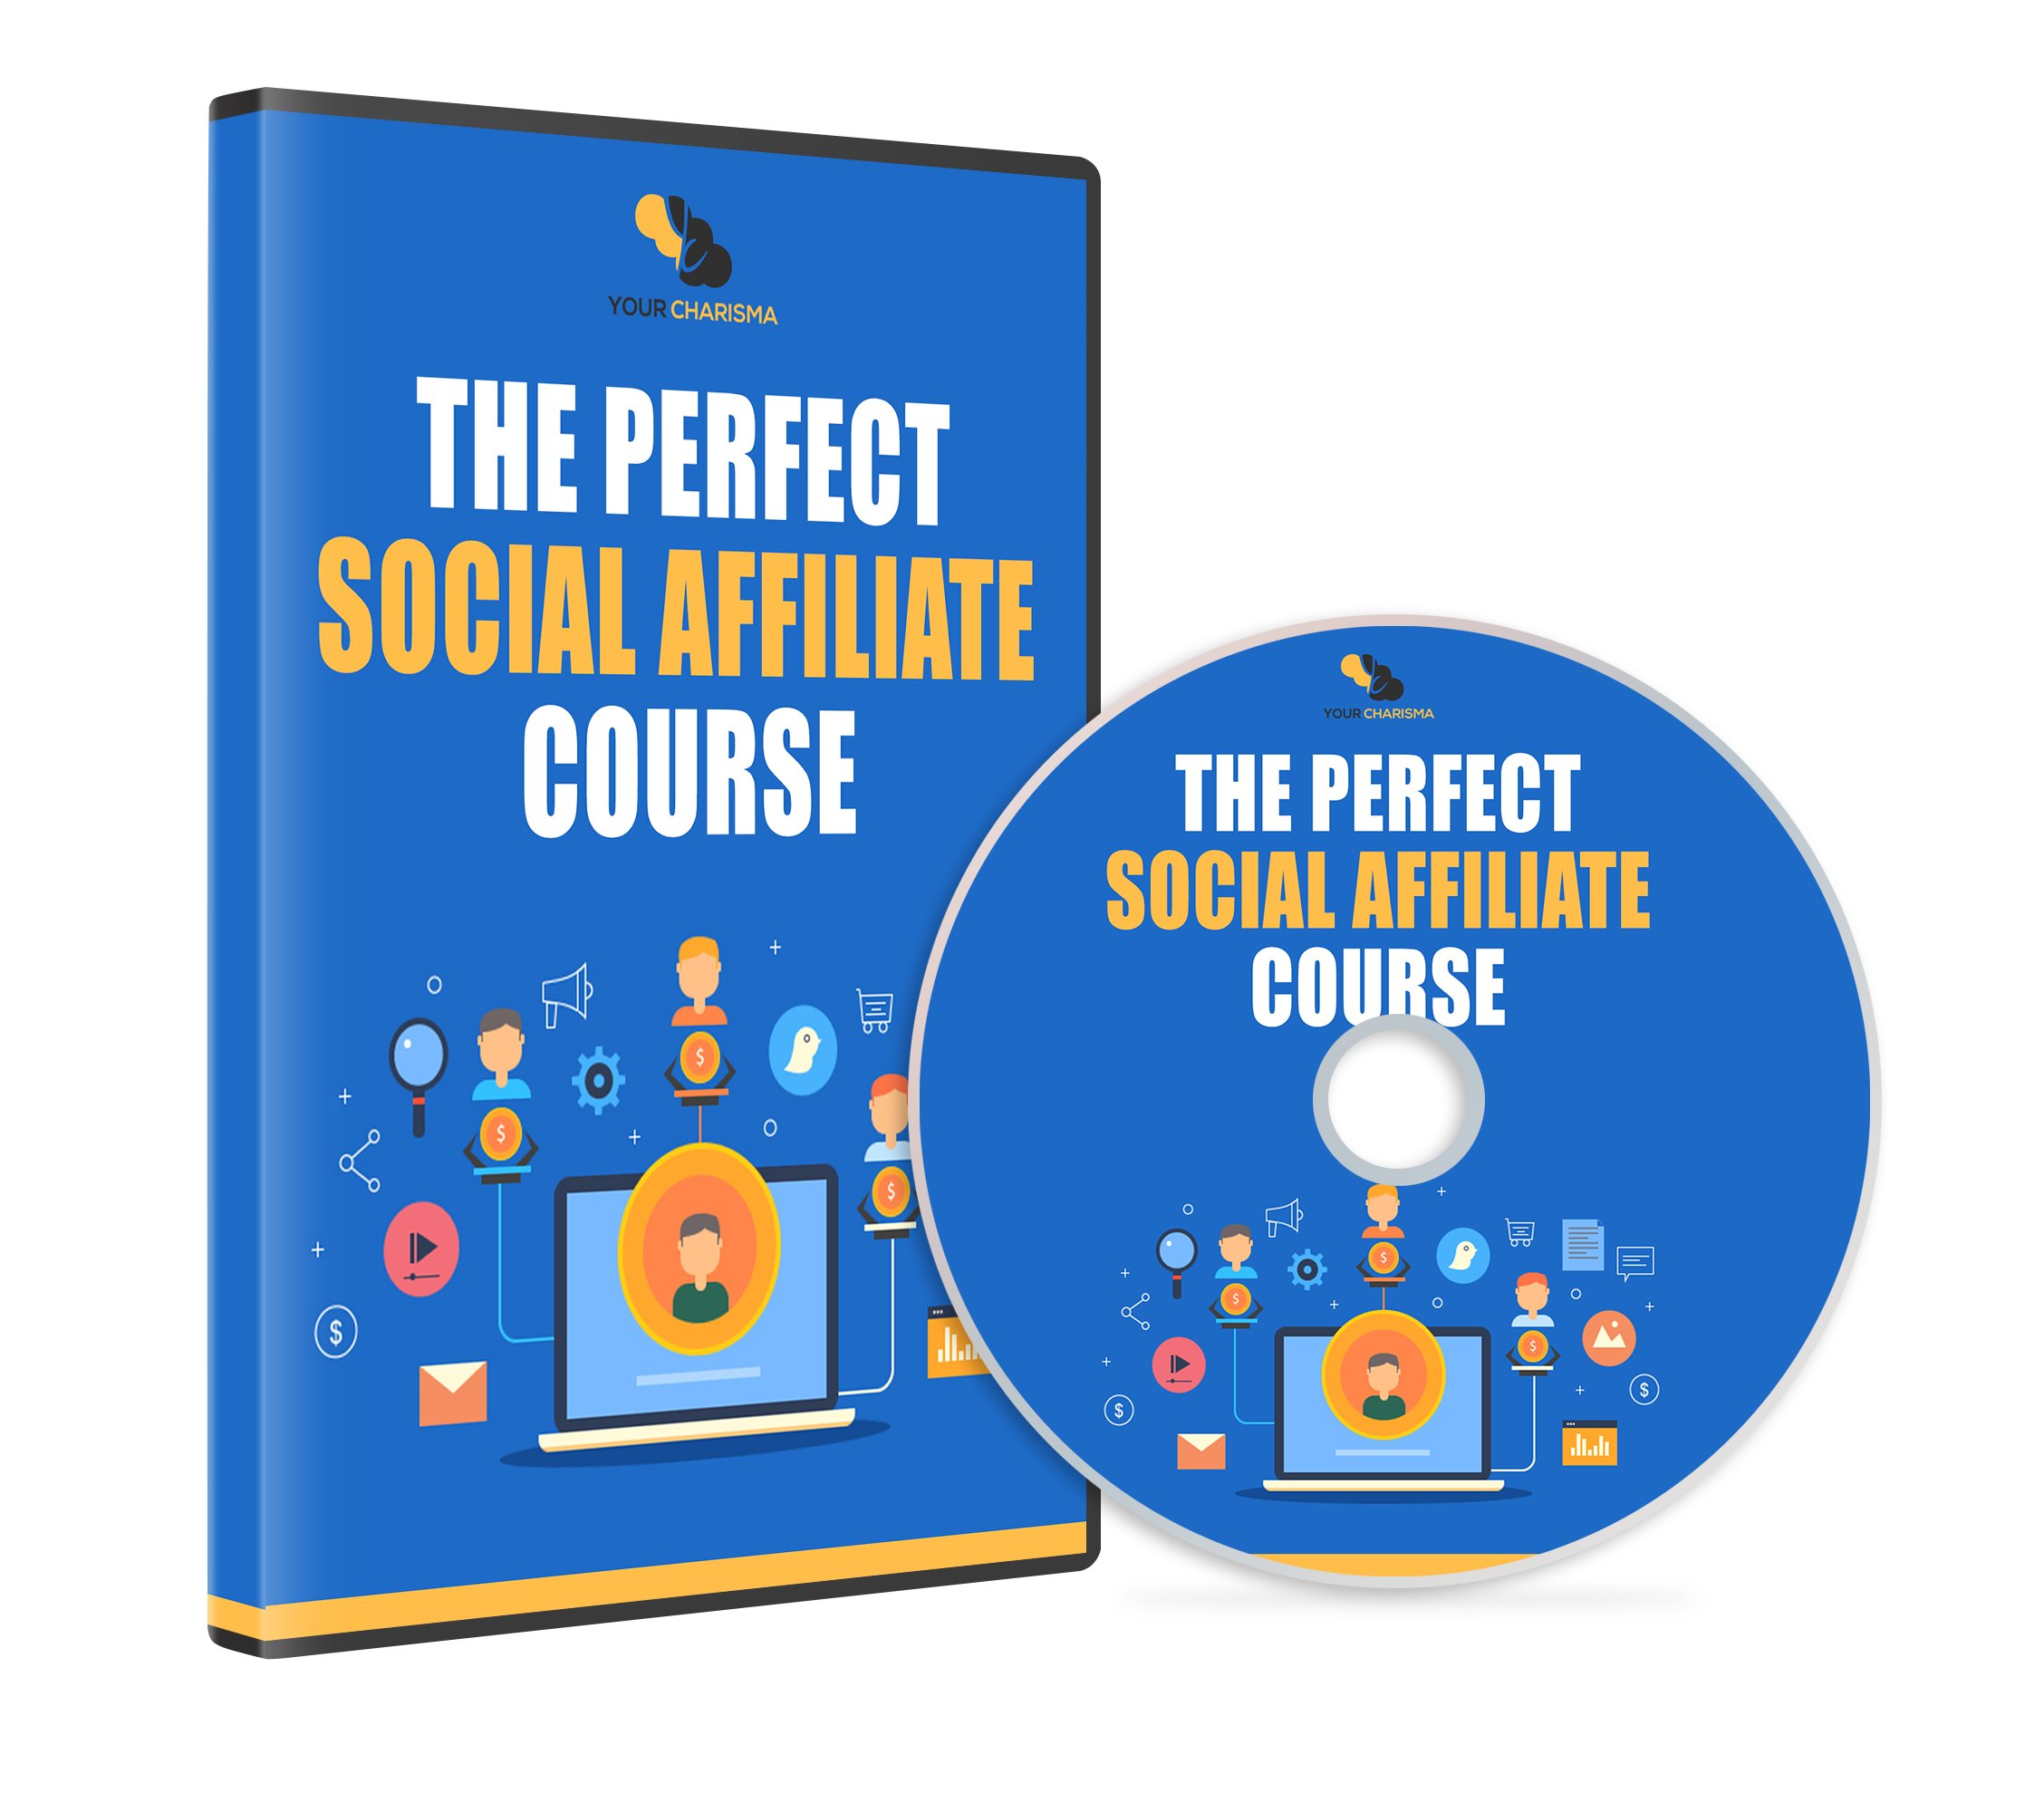 The Perfect Social Affiliate Course